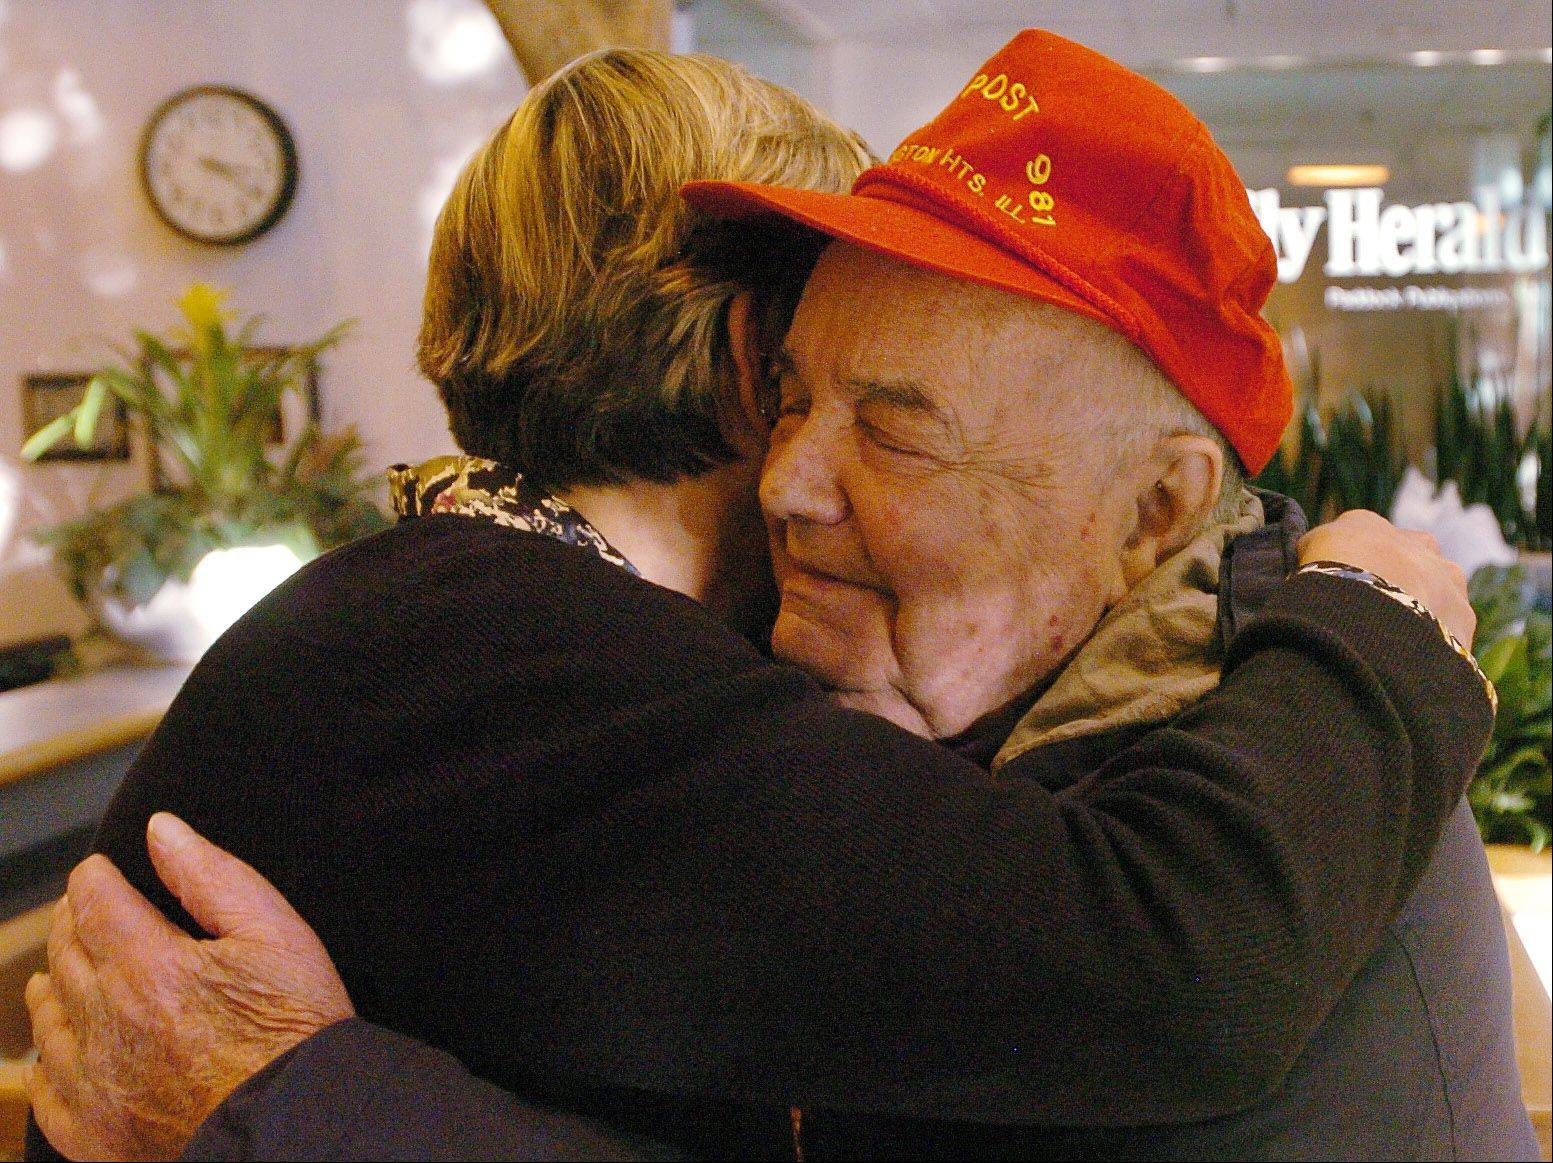 Touched by the kindness he received throughout his life, Walt Meder, 90, of Arlington Heights, hugs M. Eileen Brown, the Daily Herald's assistant vice president and director of strategic marketing and innovation, to celebrate the launching of a new charitable effort to provide holiday gifts to needy kids.